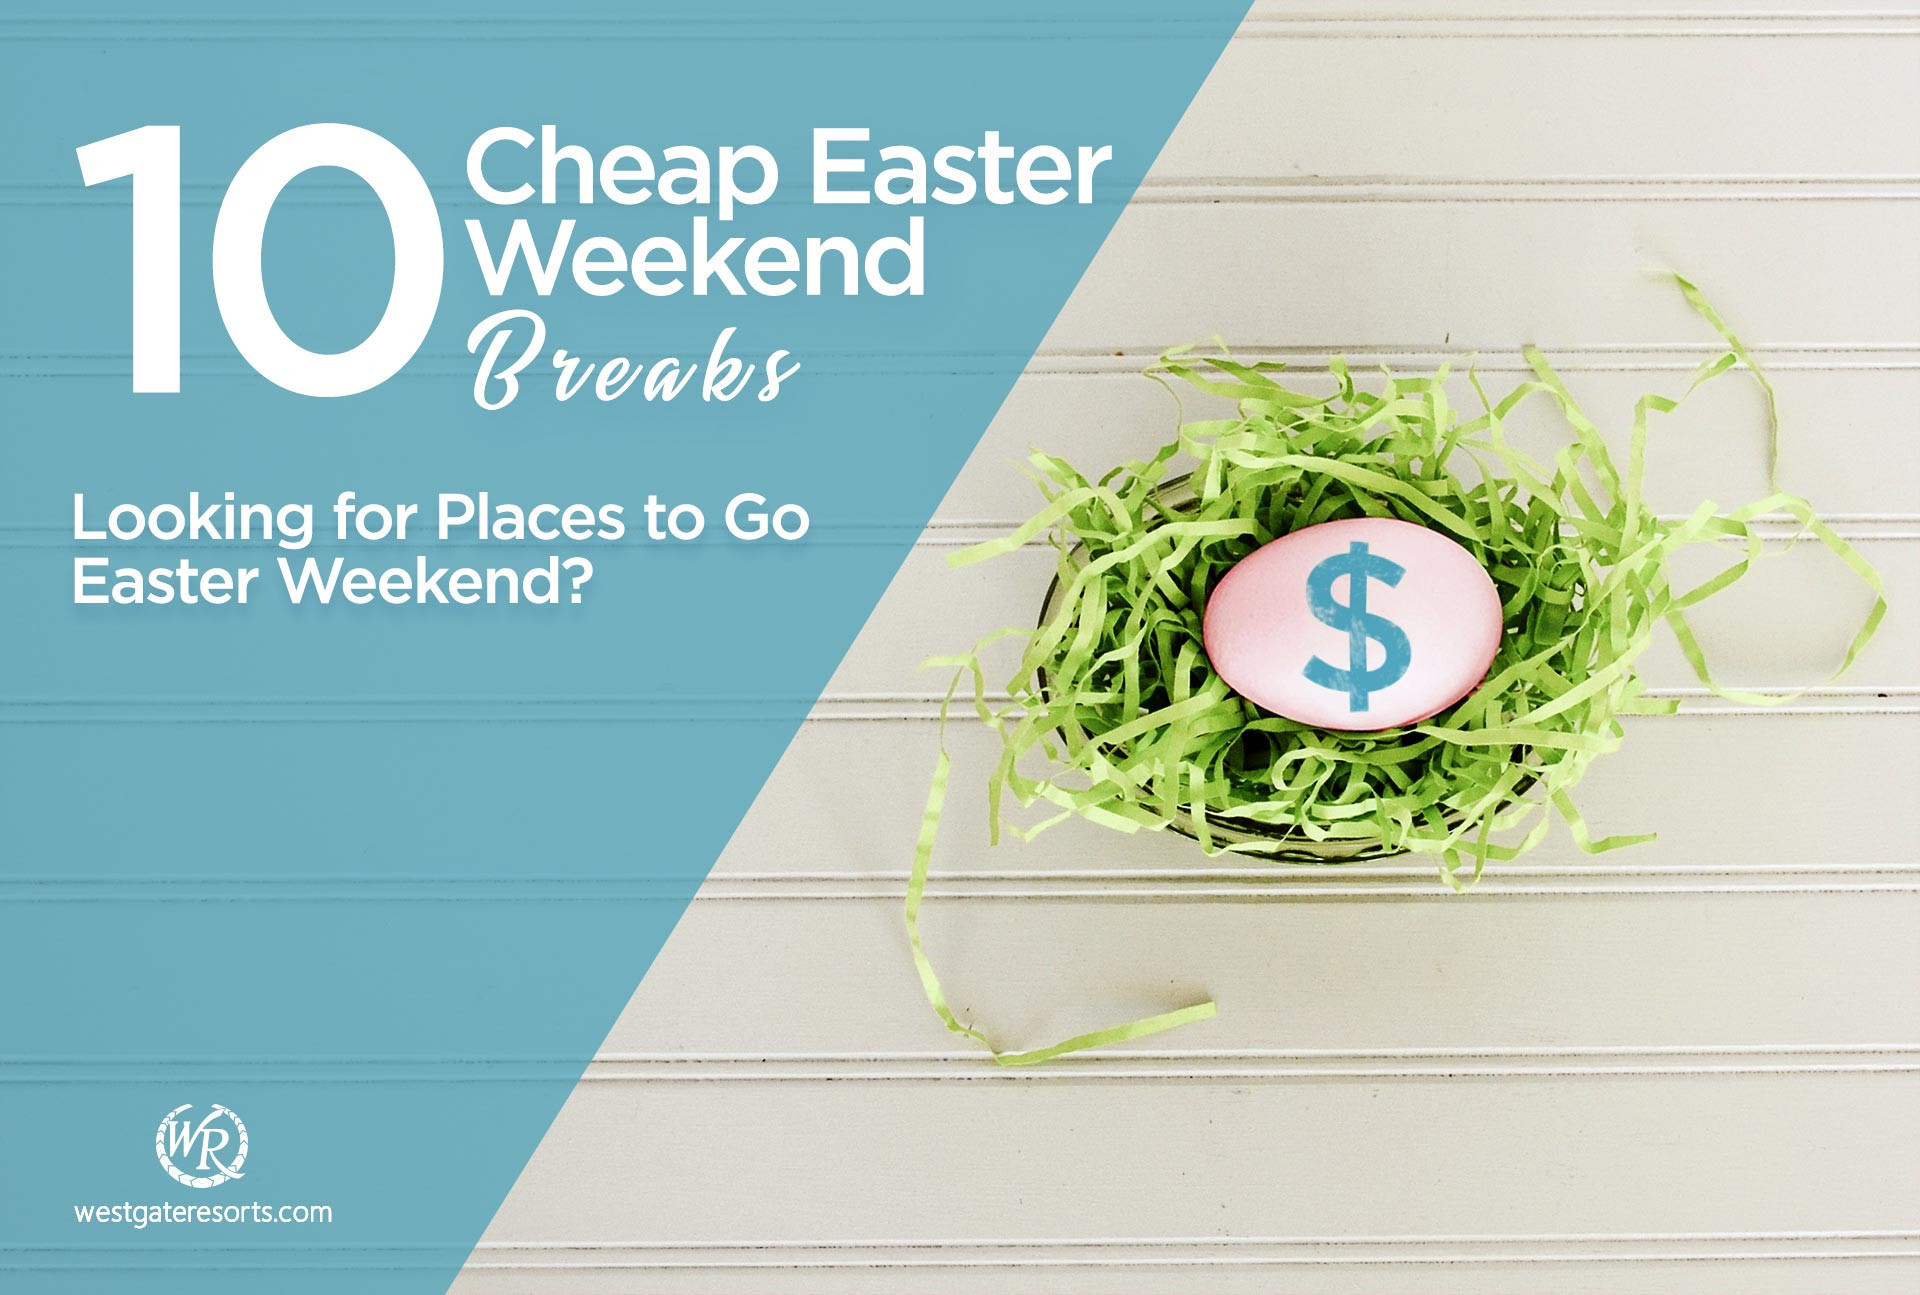 Cheap Easter Weekend Breaks for 2019 | Places to Go Easter Weekend 2019 | Westgate Resorts